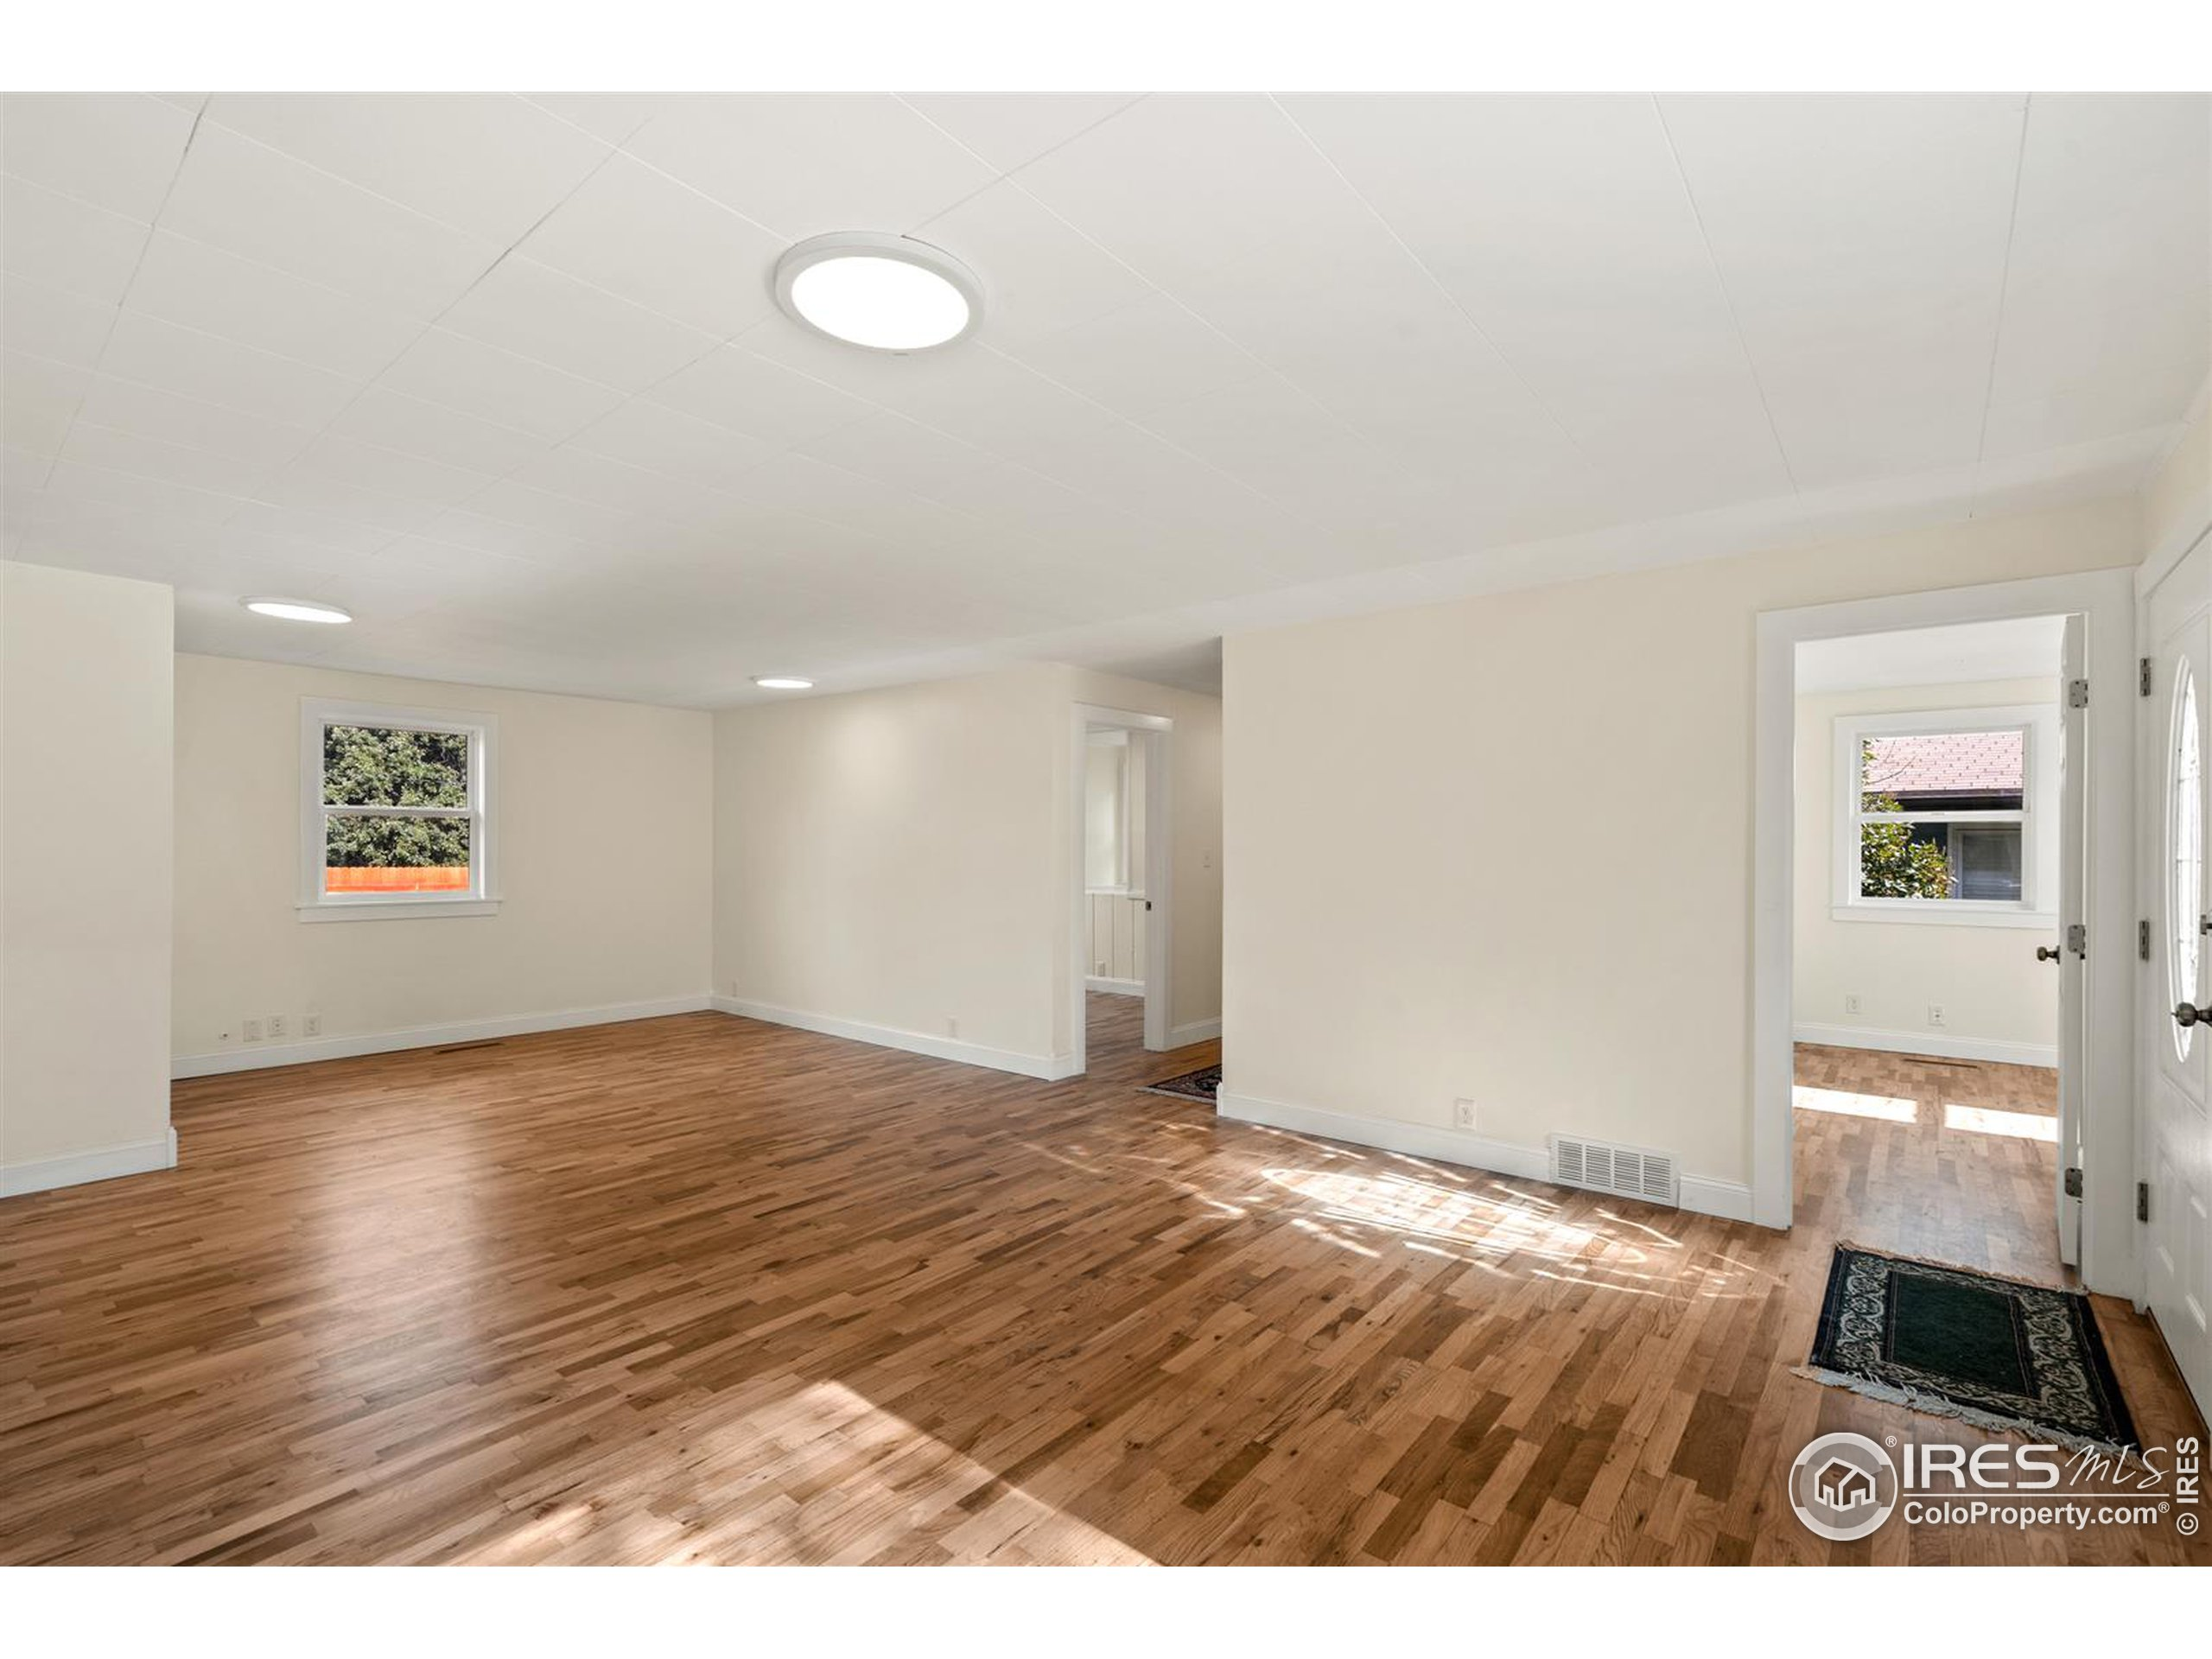 Fully renovated complete with LED lighting throughout